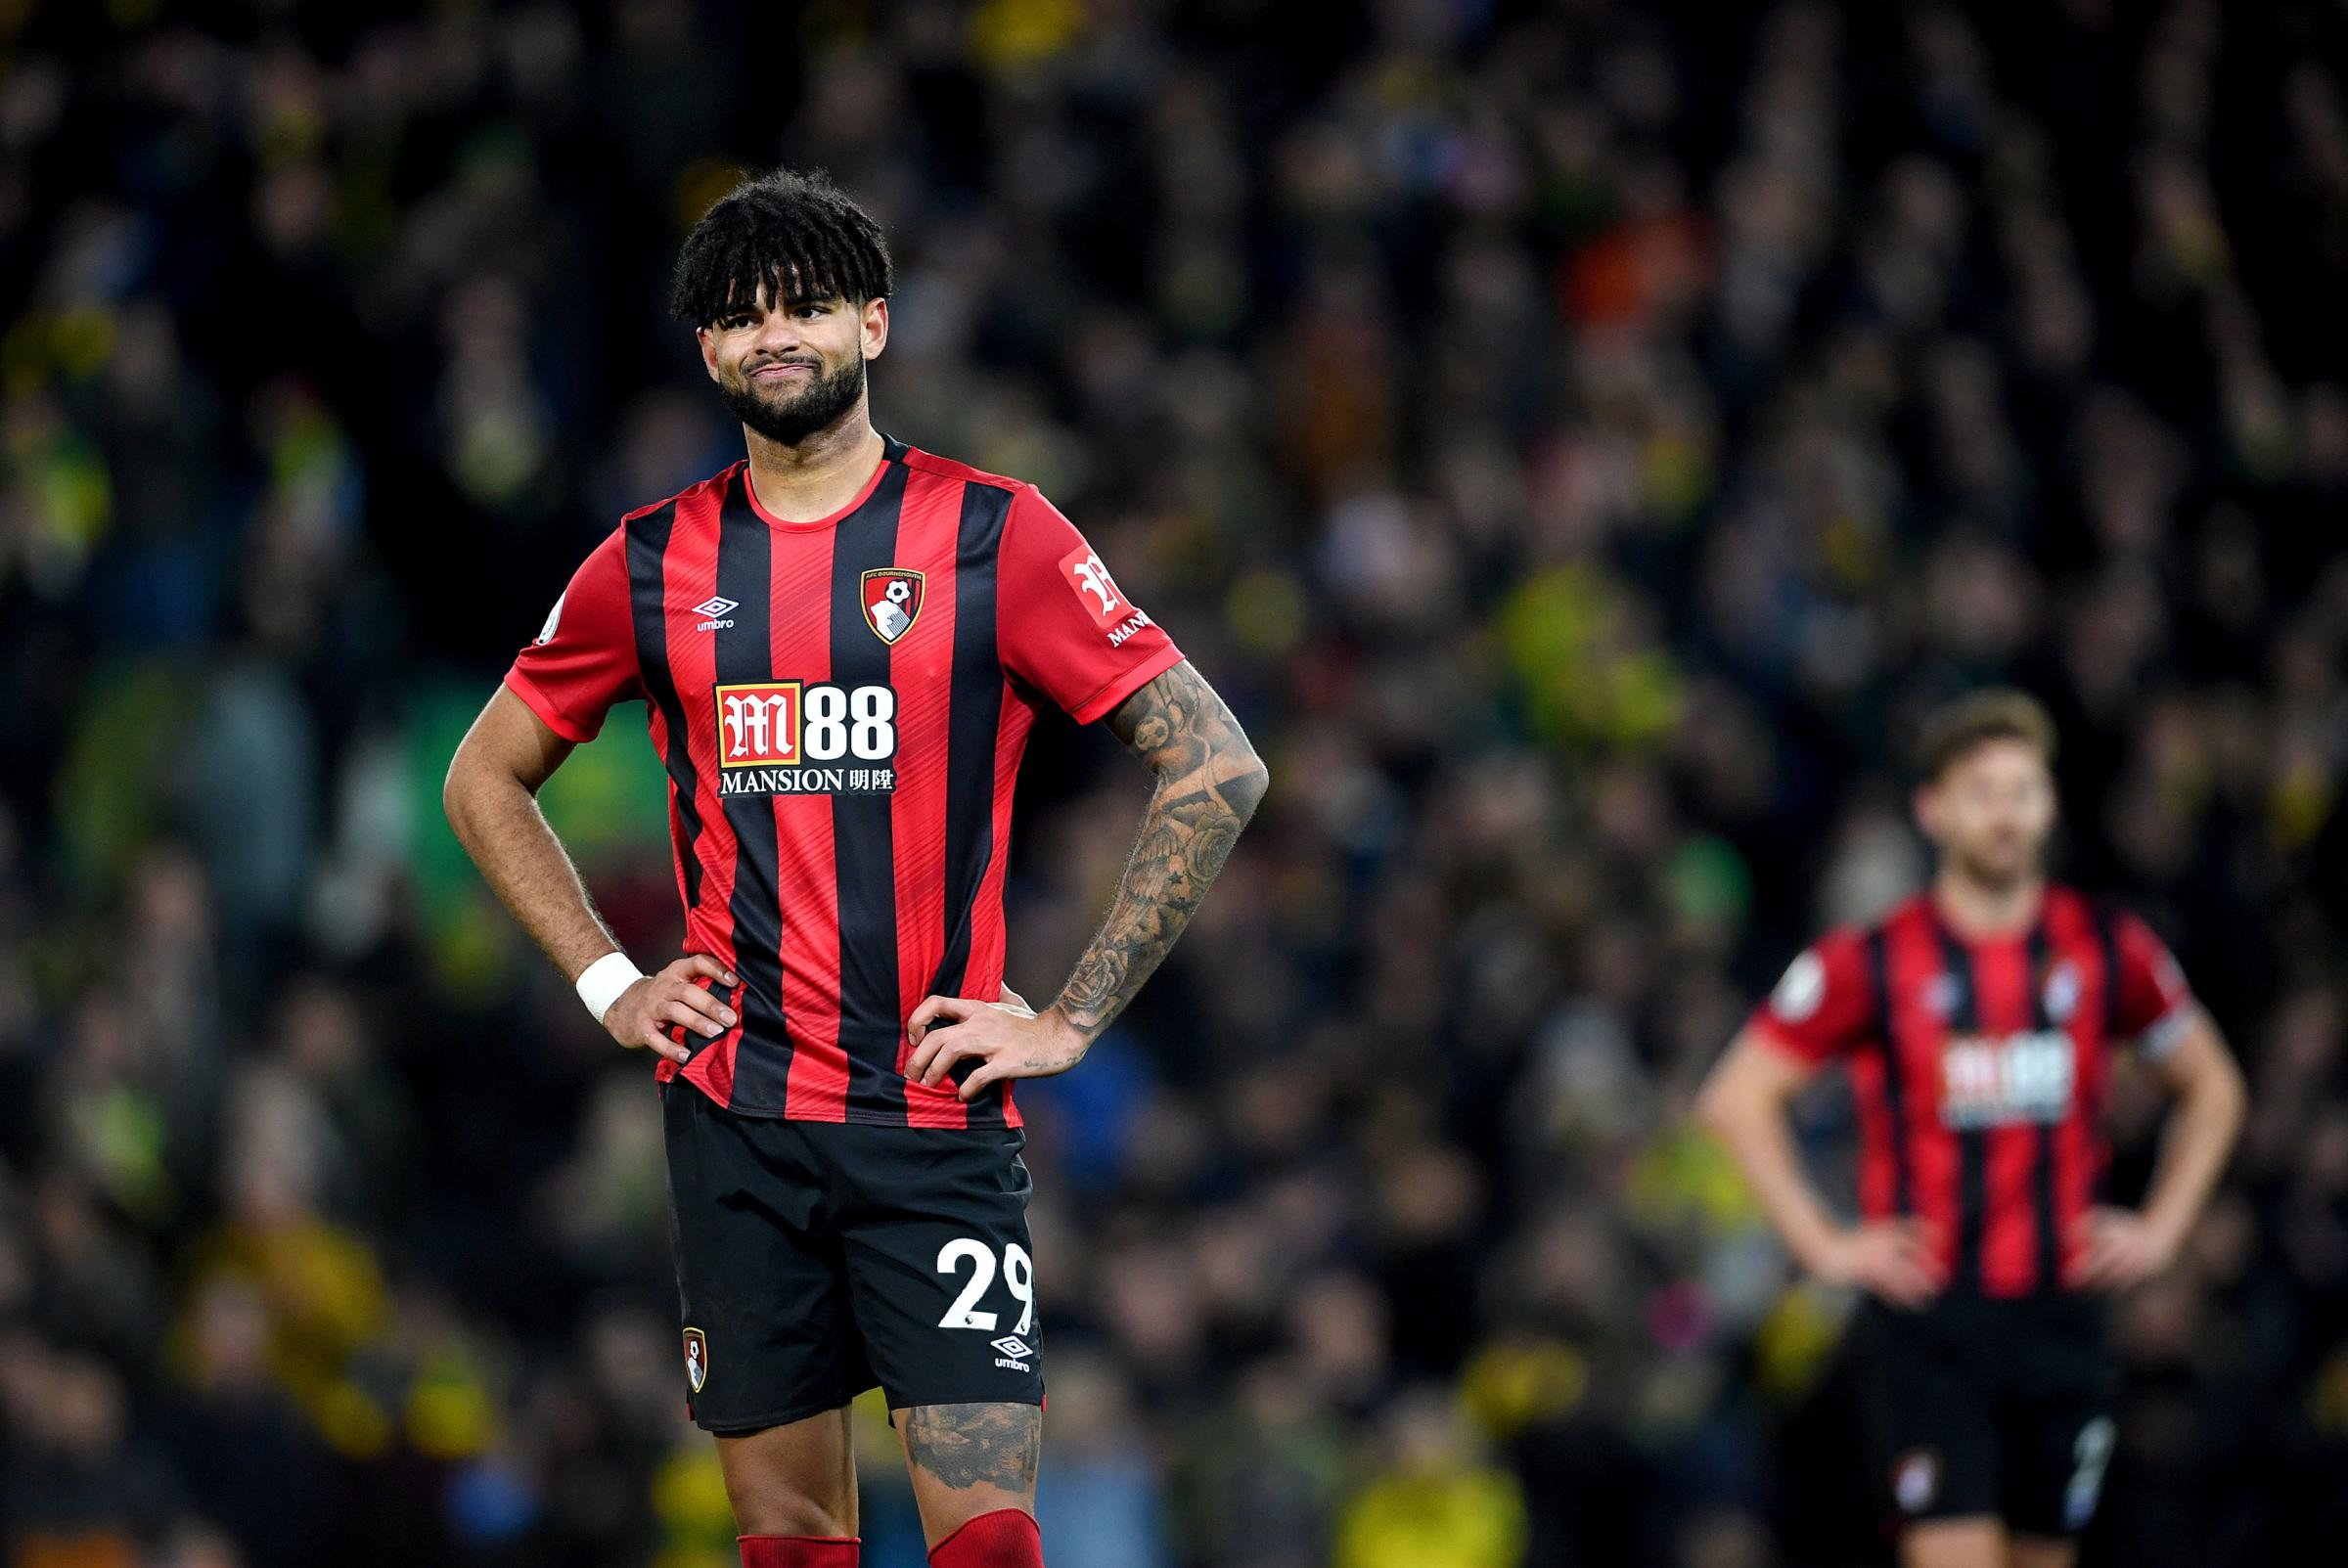 Get the lowdown on Albion opponents Bournemouth